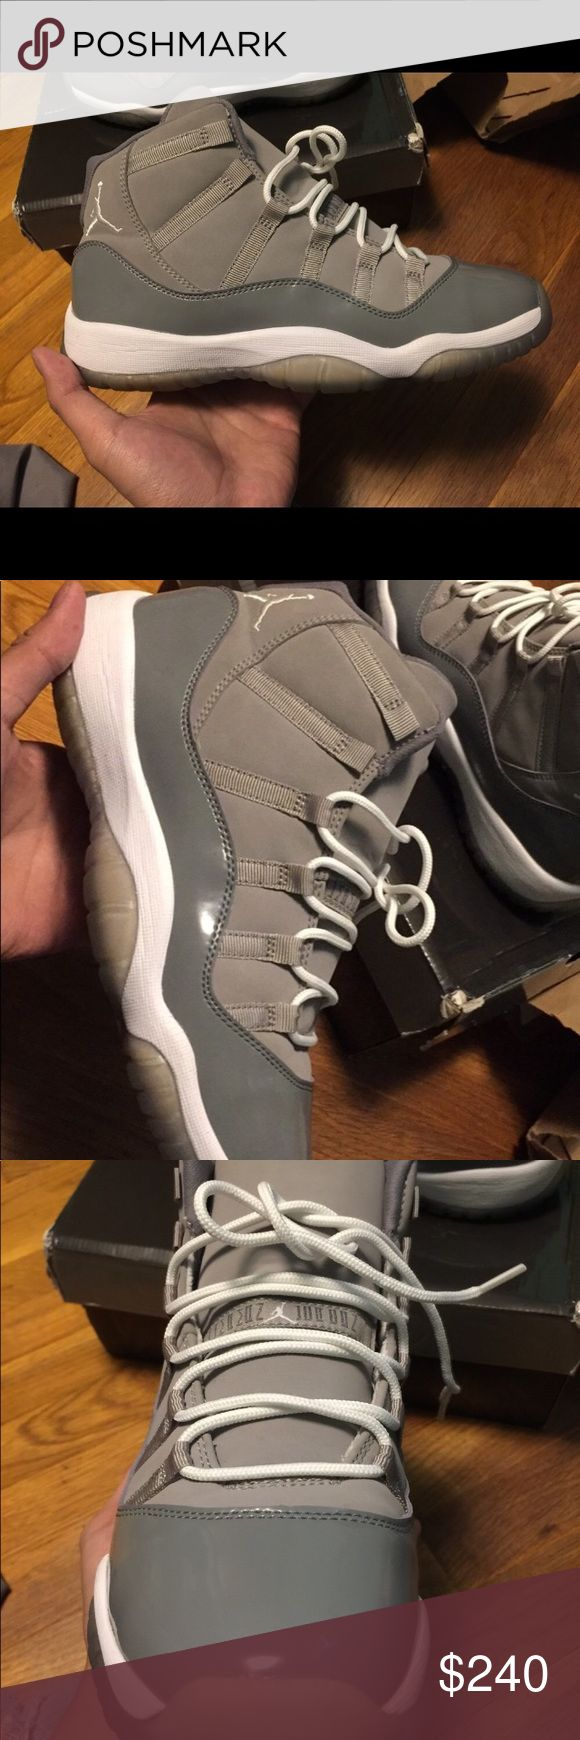 Cool grey 11s Size 7 These are clean, OG all, hard to find basically rare Jordan Shoes Sneakers